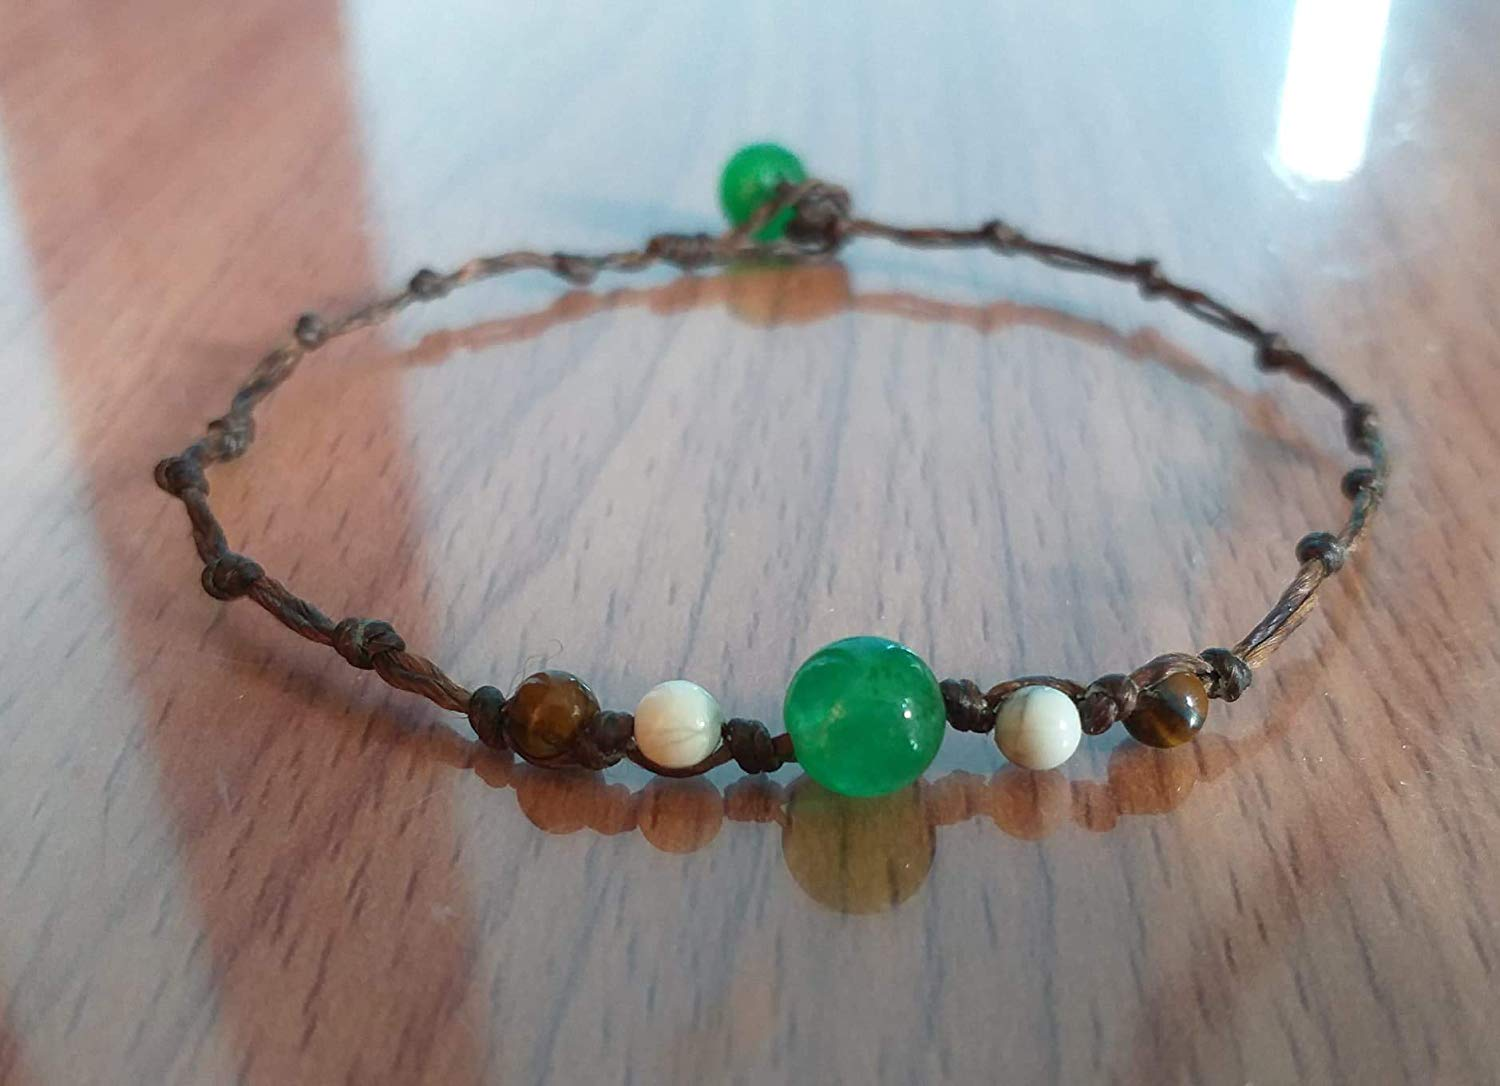 Green jade anklets,Tiger Eye anklets,howlite stone anklet is fashionable for both men and women.